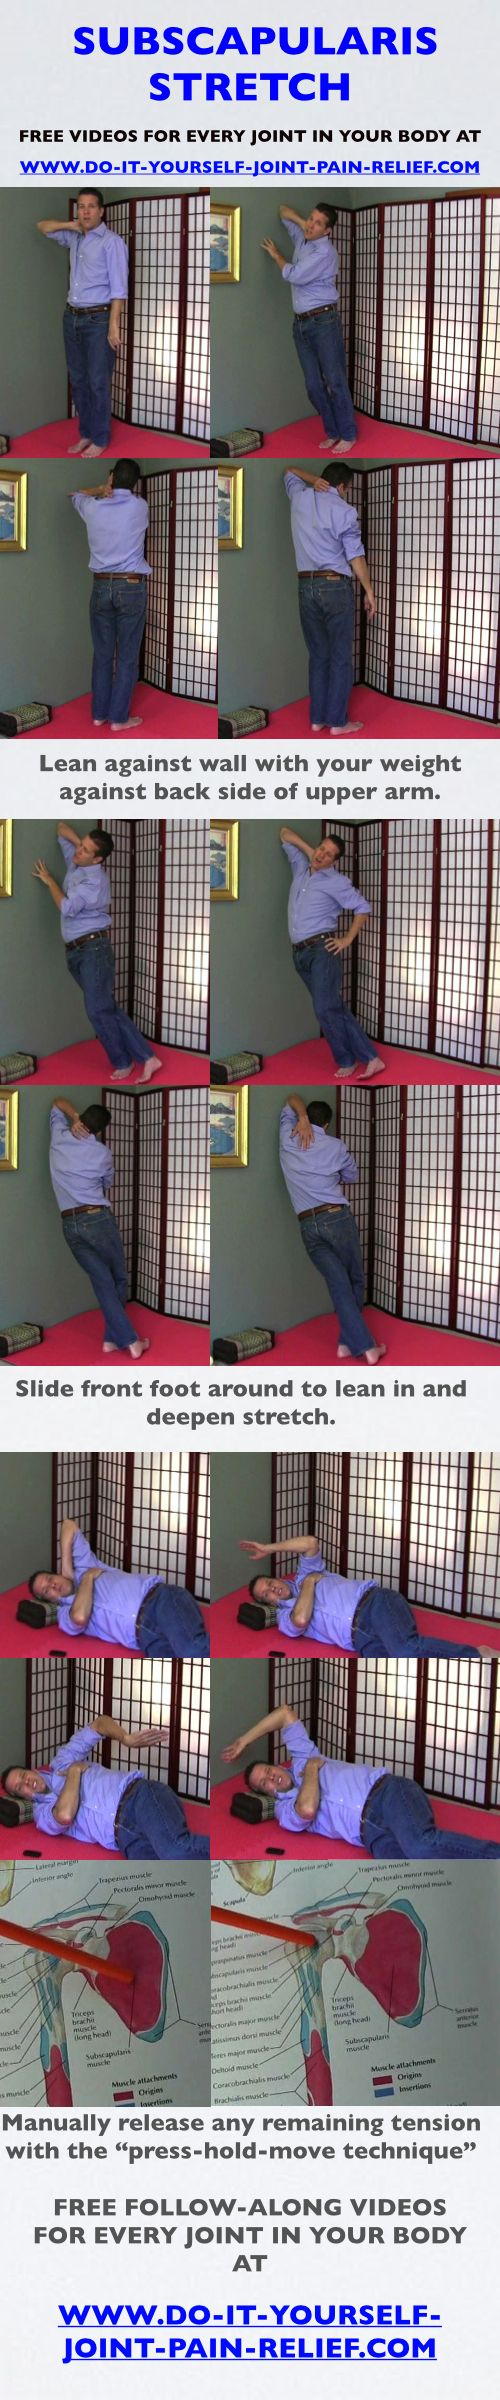 Free Your Neck with this Subscapularis Stretch! Great for those who compute or drive a lot. Or for those with pain where your neck and shoulders intersect. FREE videos of this stretch at: http://www.do-it-yourself-joint-pain-relief.com/subscapularis-stretch.html